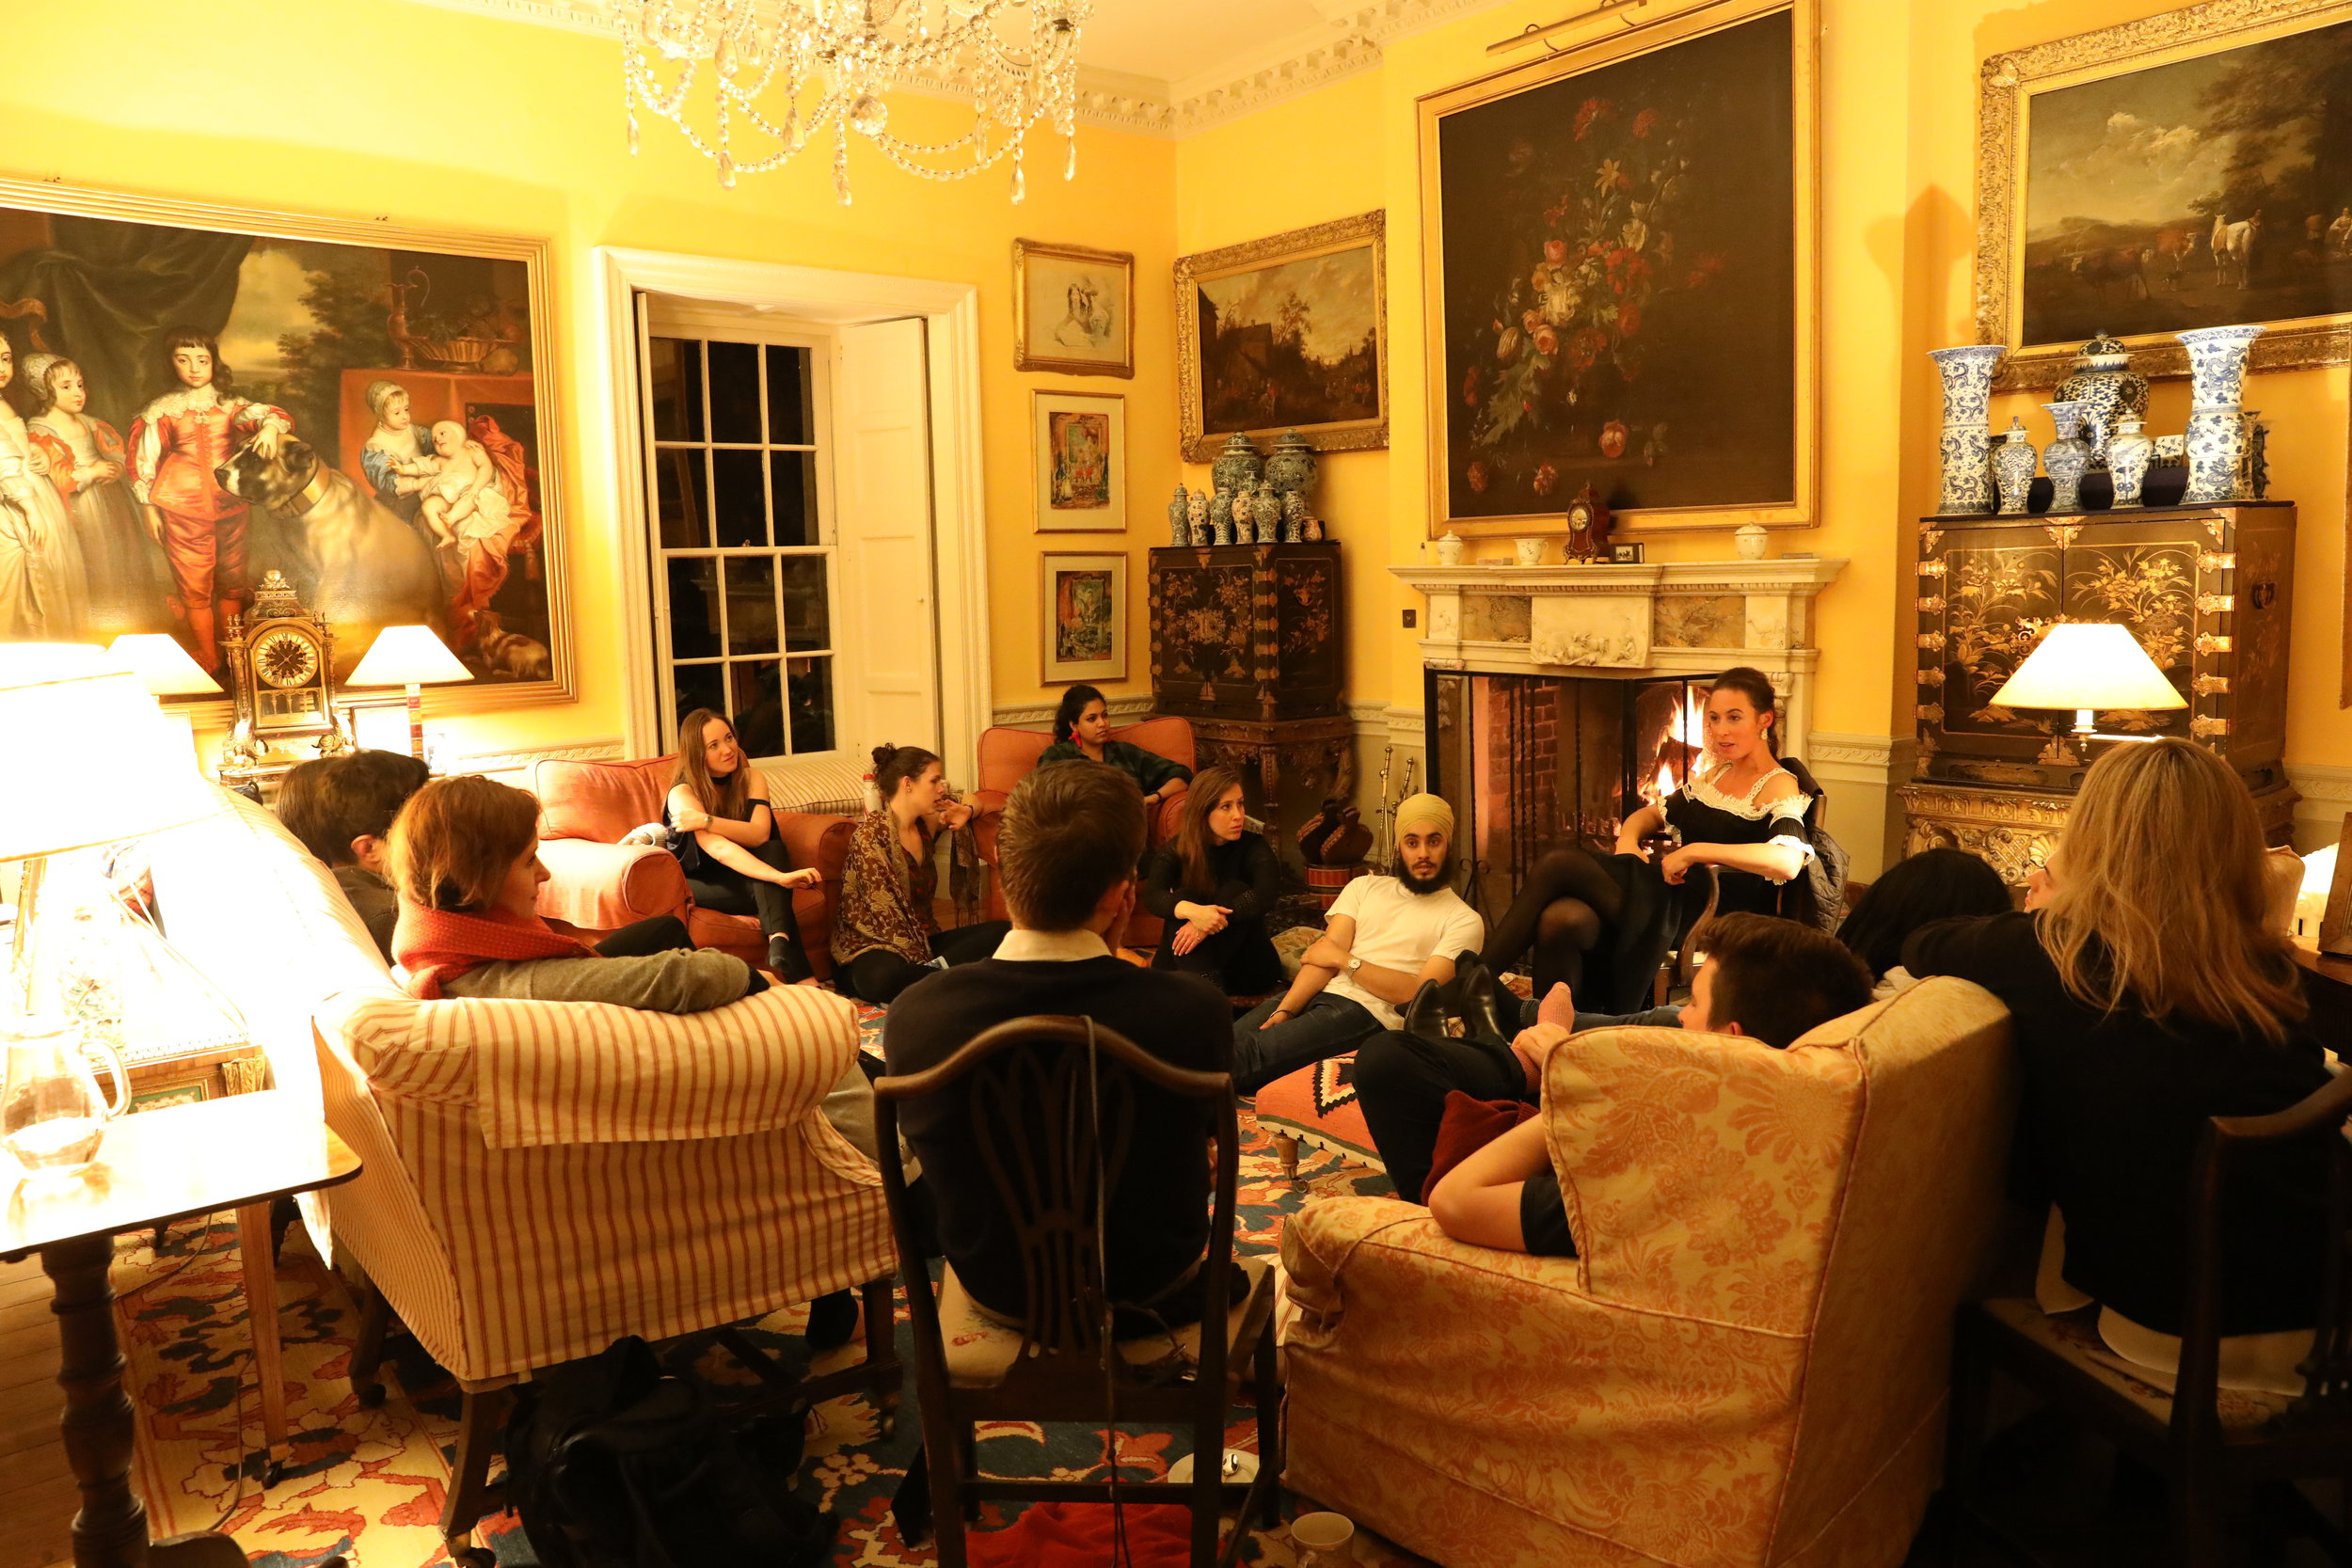 Salon Explorations at Smedmore House on the Jurassic Coast- a weekend of nature, culture, and conversations